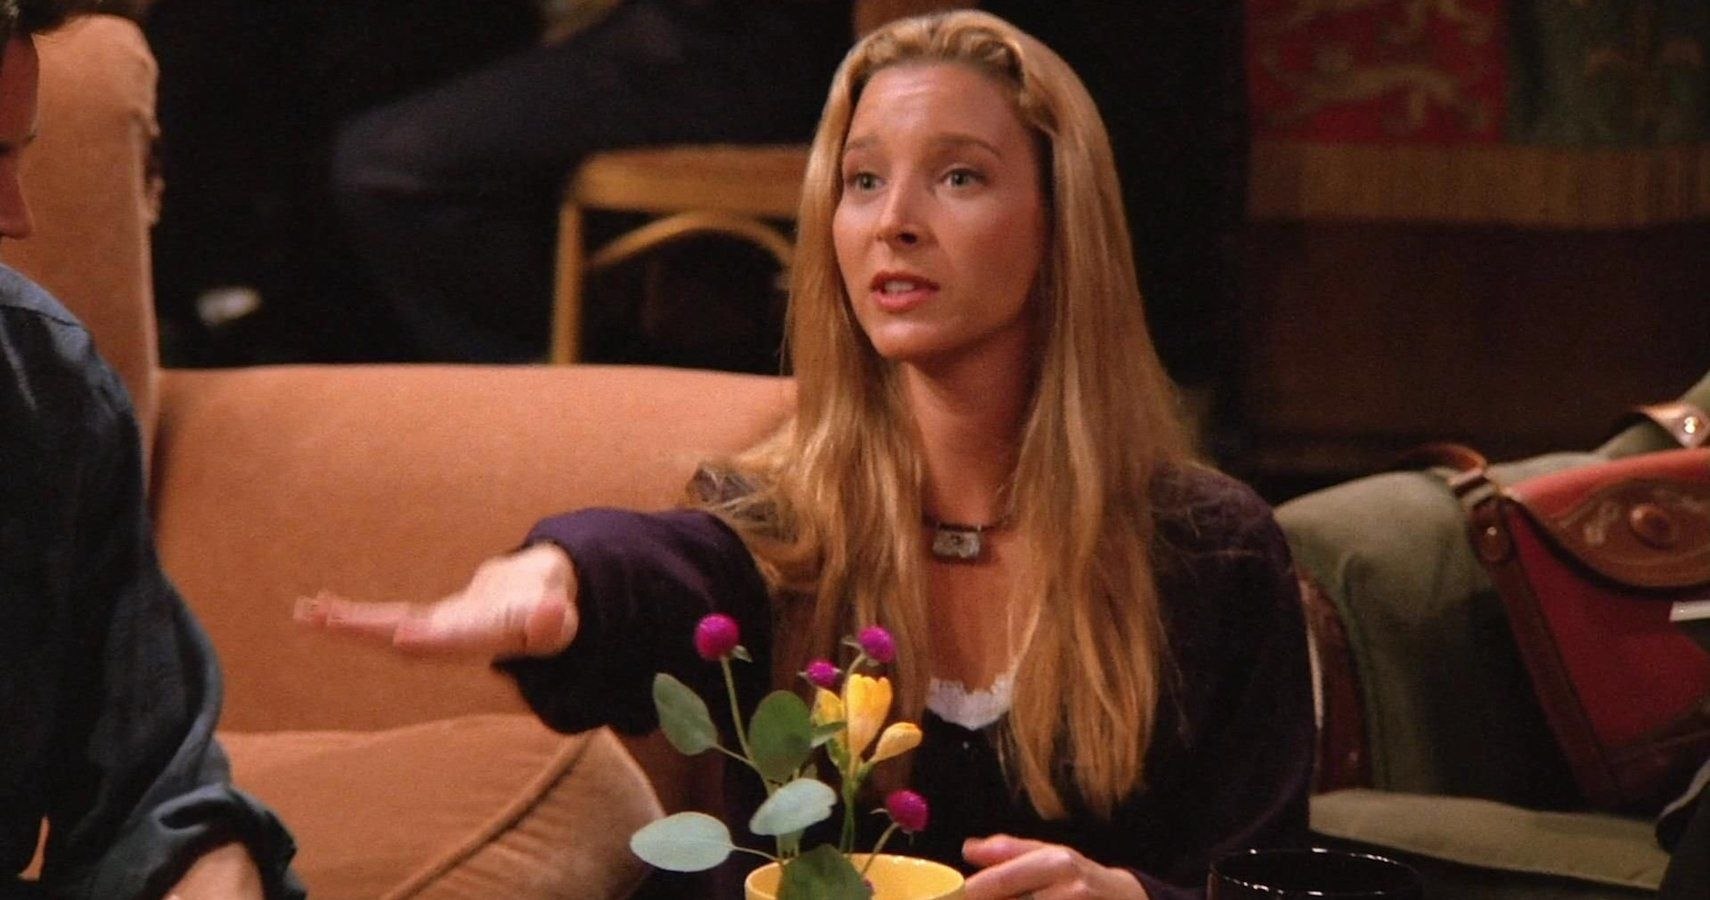 Friends: 10 Phoebe Memes That Are Too Hilarious For Words